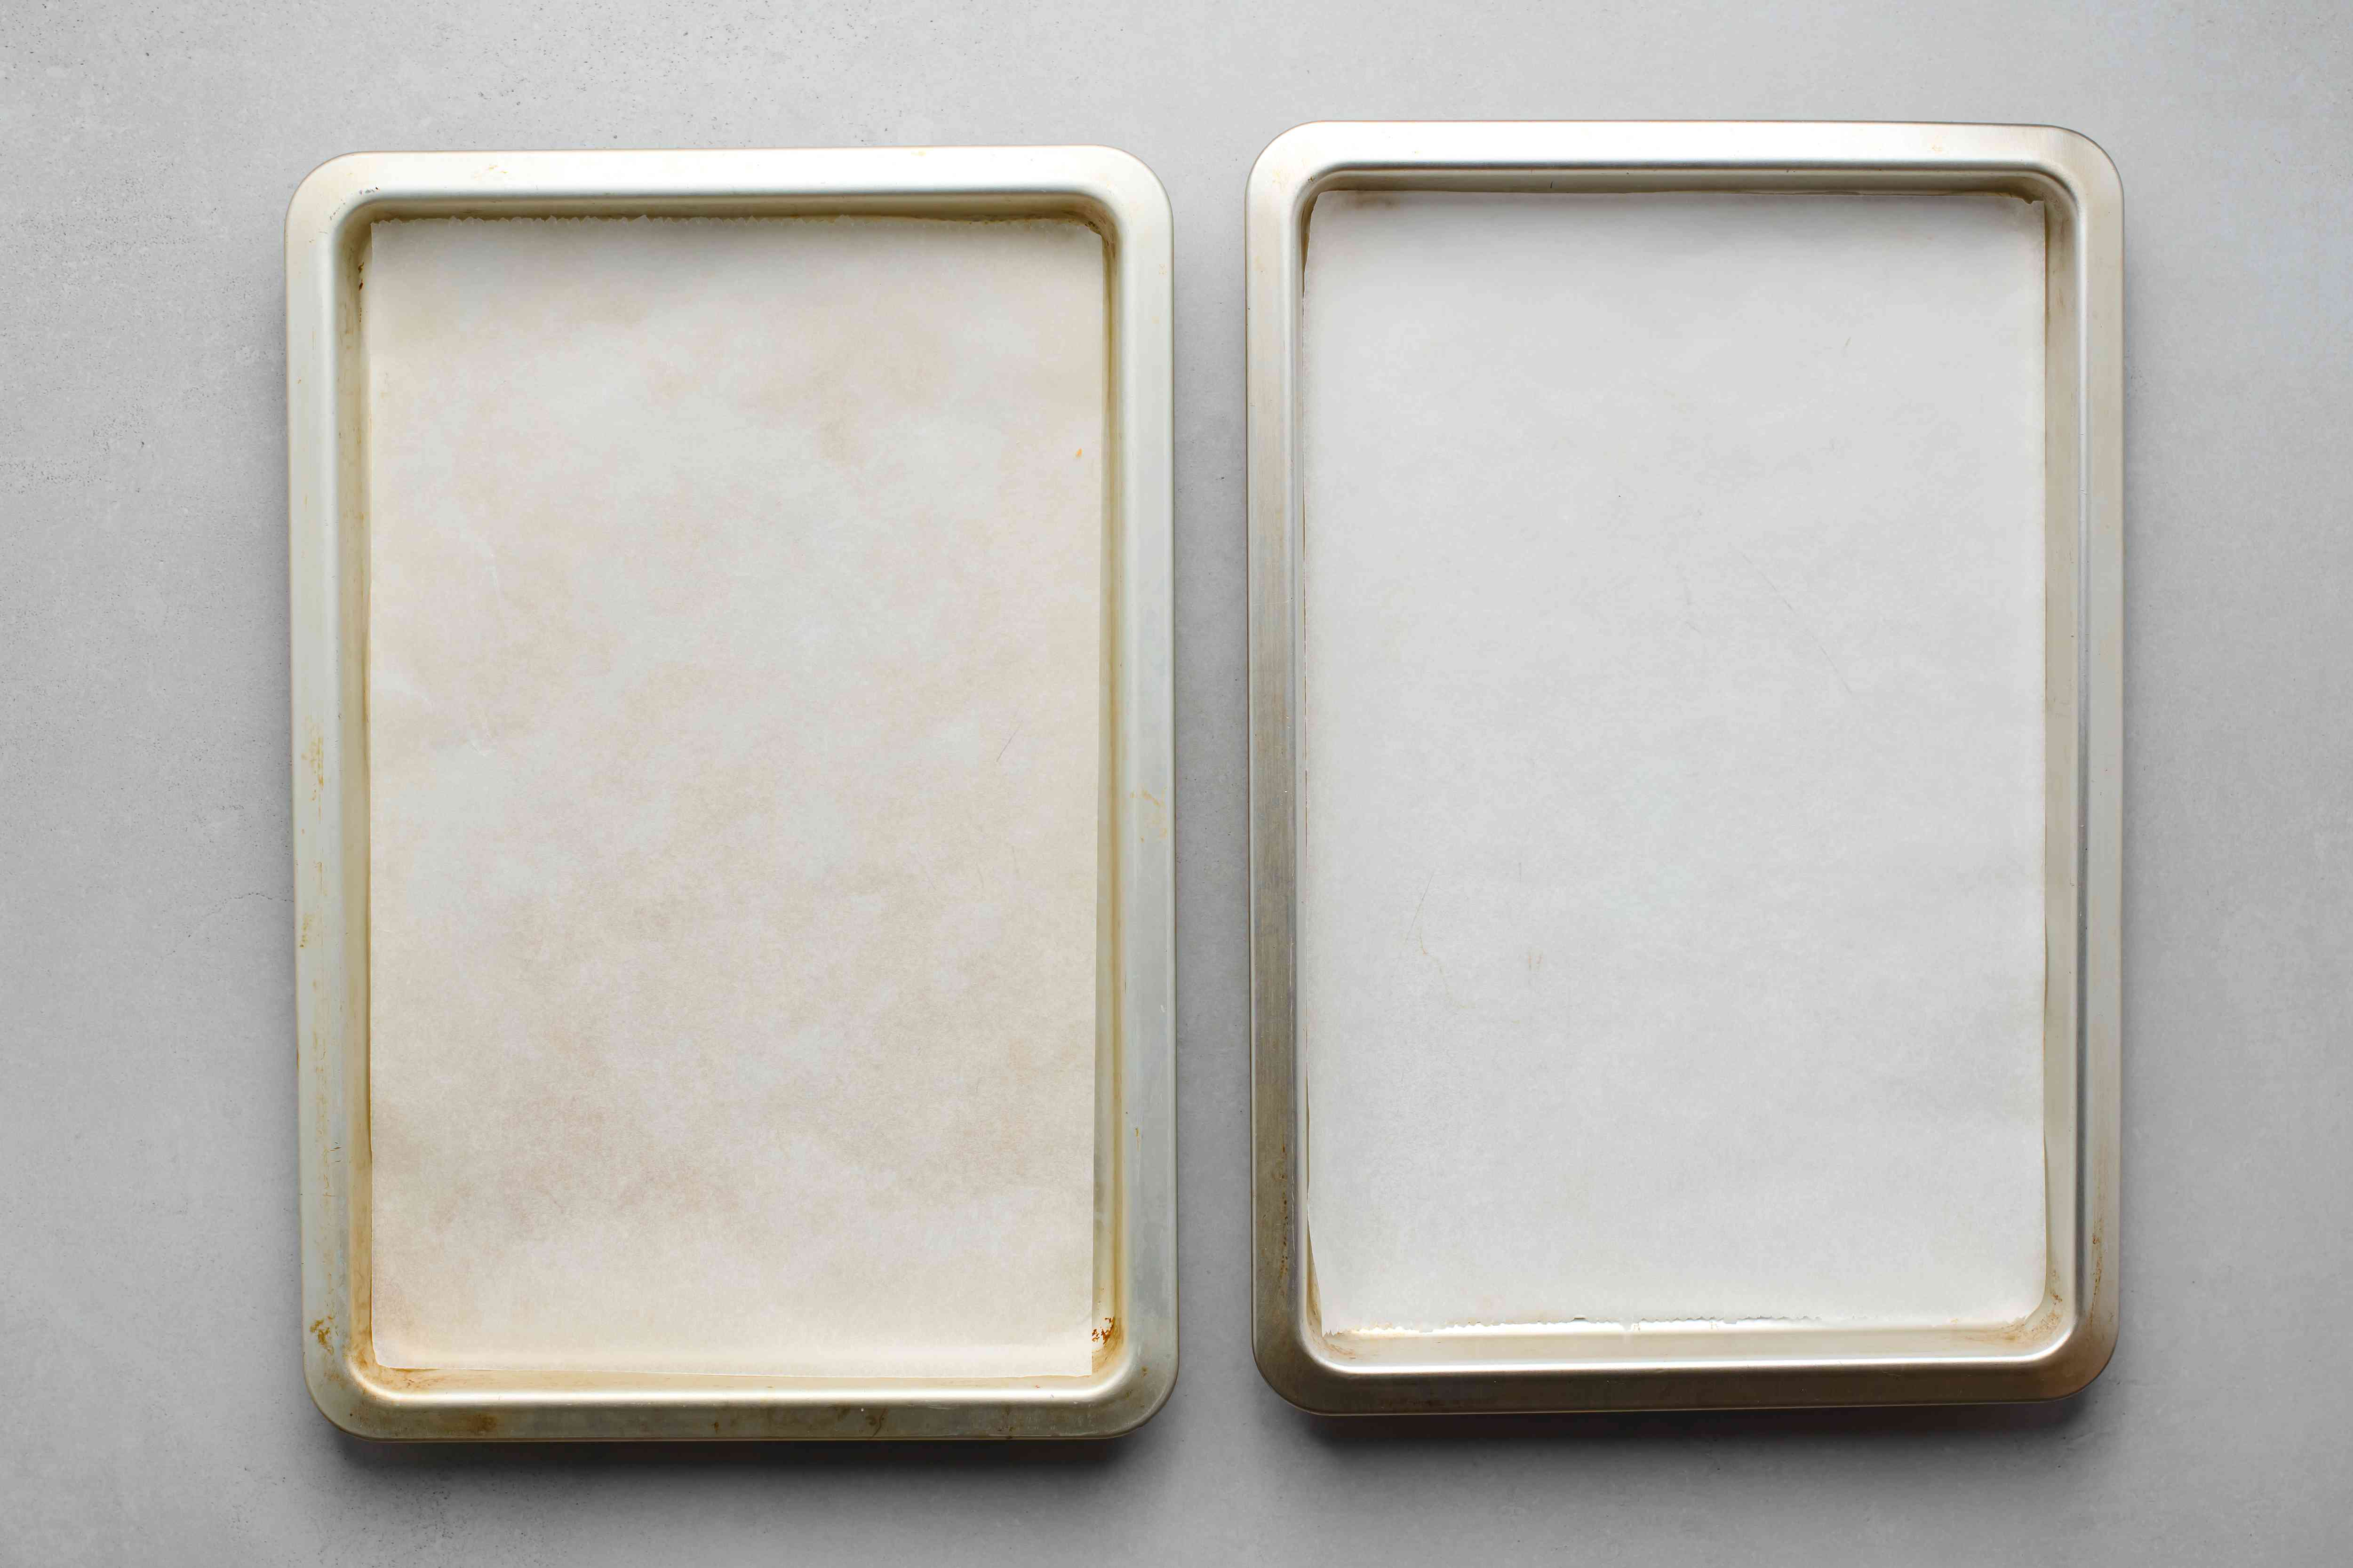 baking trays with parchment paper